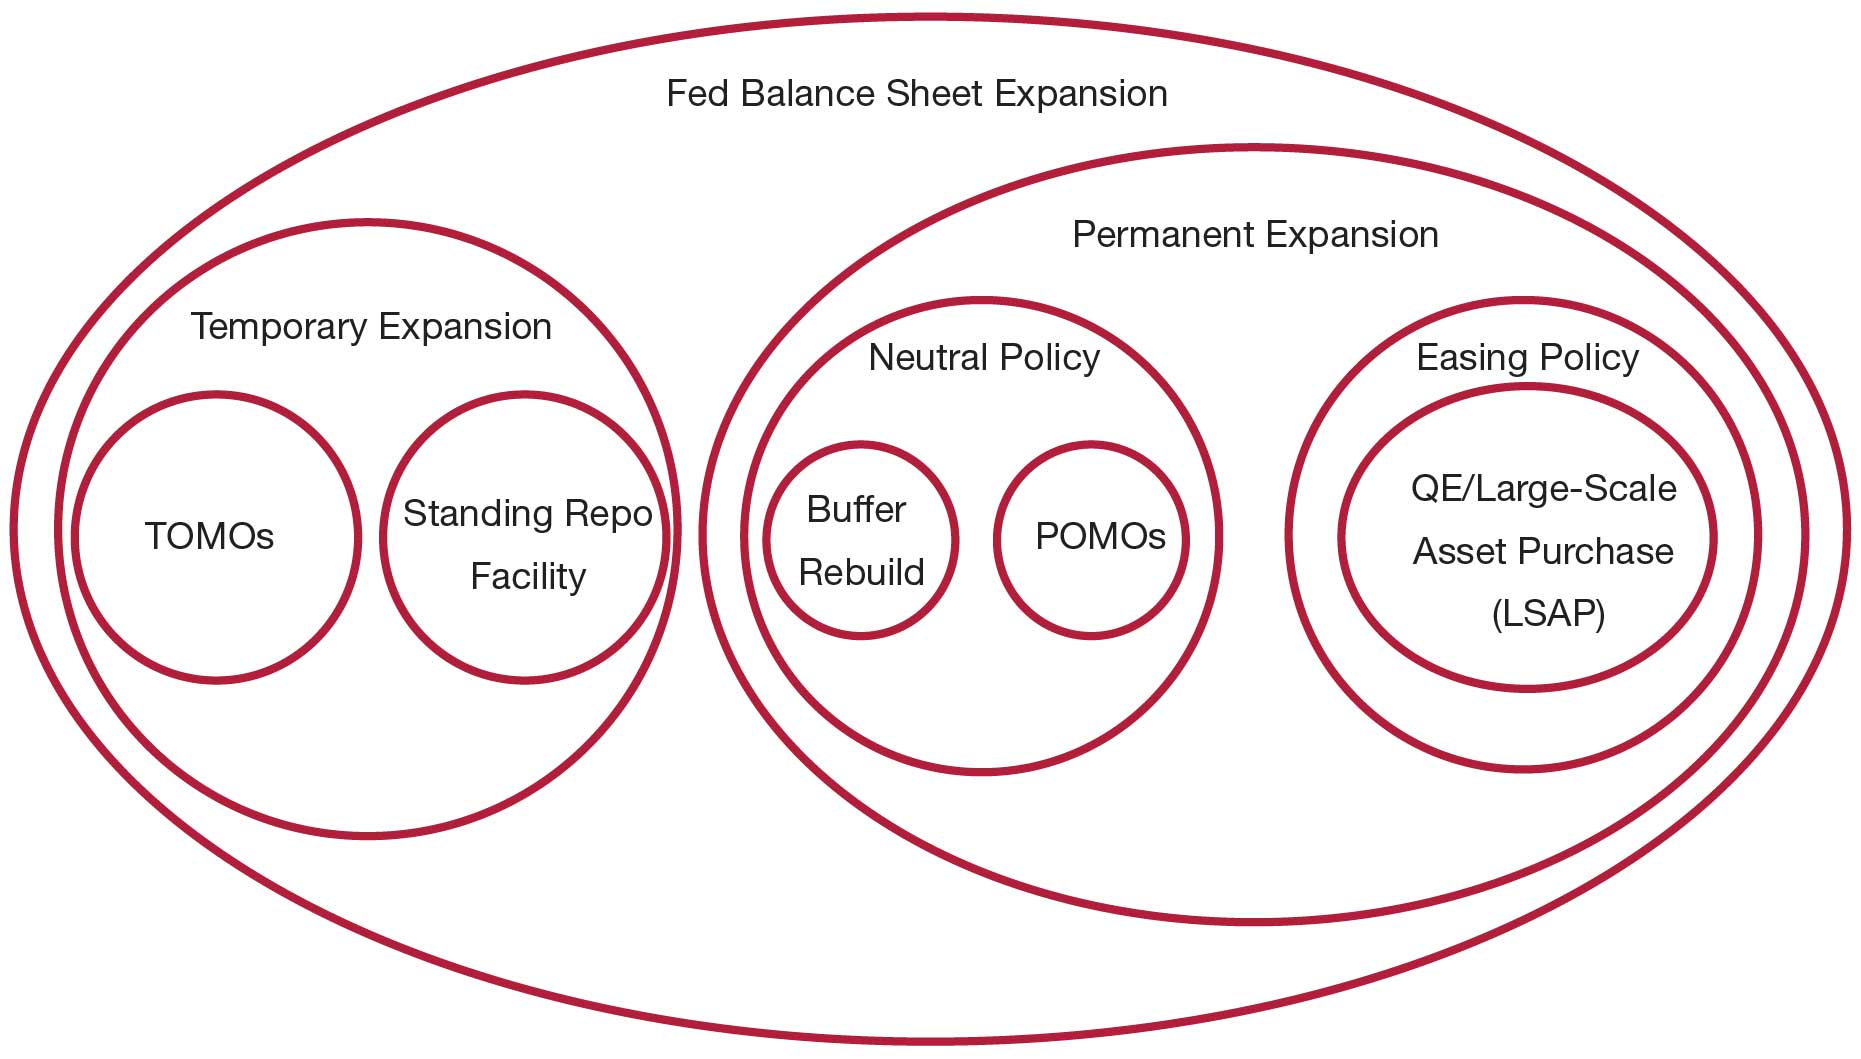 Policy tools for Fed Balance Sheet